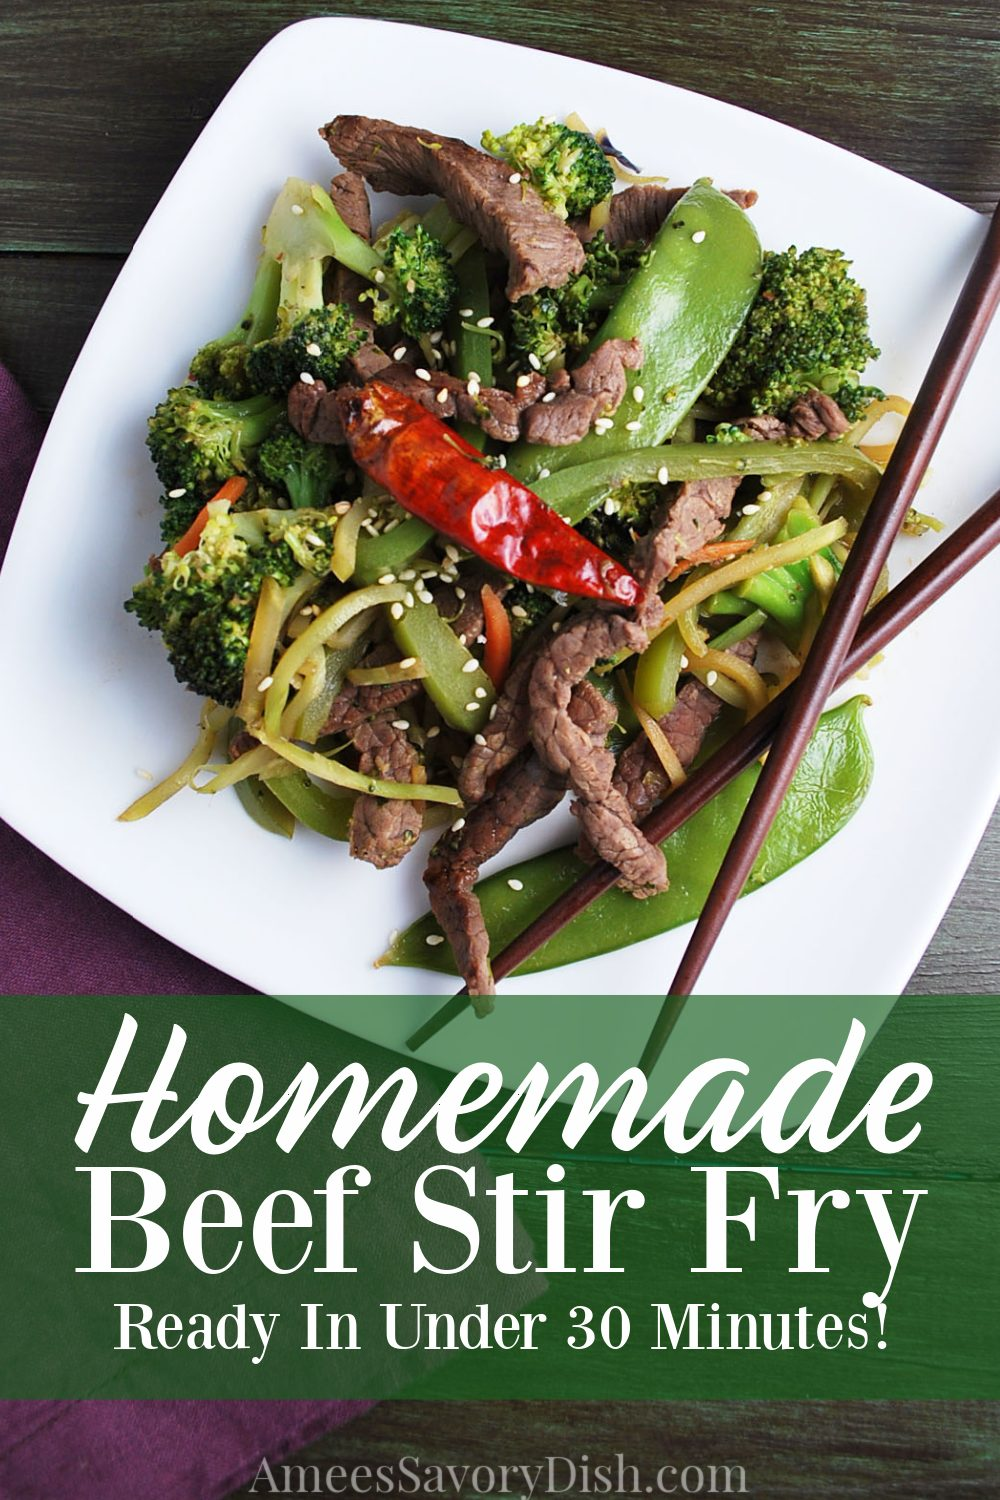 An easy and flavorful recipe for beef stir fry made with top sirloin beef, broccoli, snow peas, bell peppers, and carrots and on the table in under 30 minutes. #stirfry #beefstirfry #beefrecipe #topsirloinbeef #stirfryvegetables via @Ameessavorydish